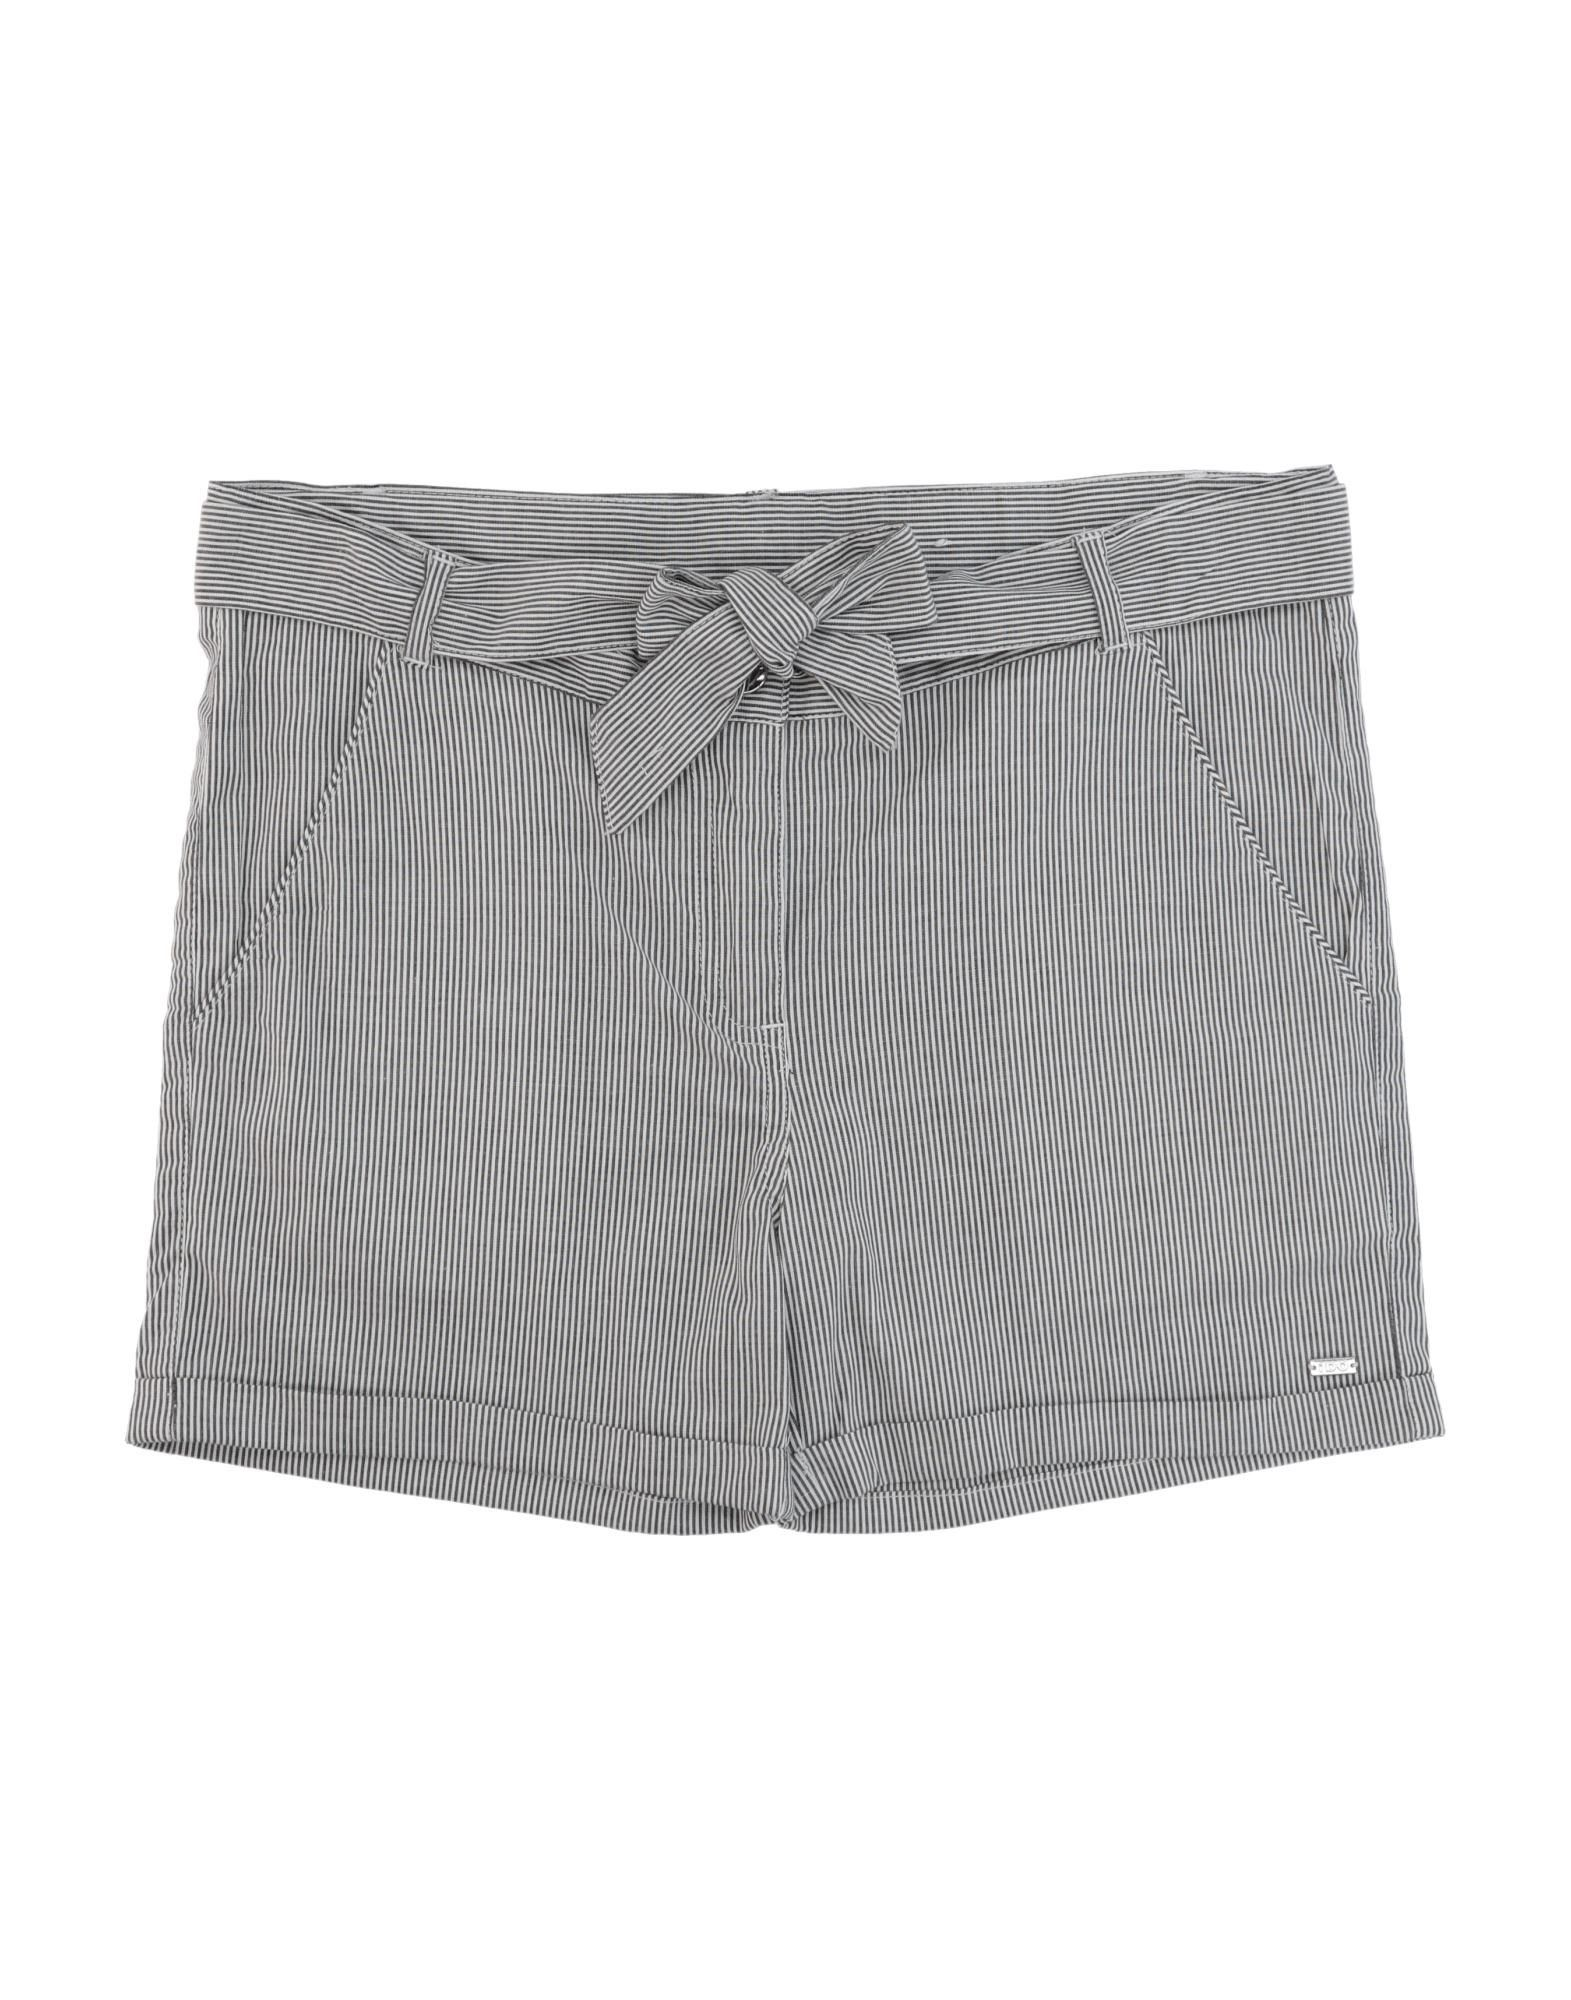 Ido By Miniconf Kids' Bermudas In Gray